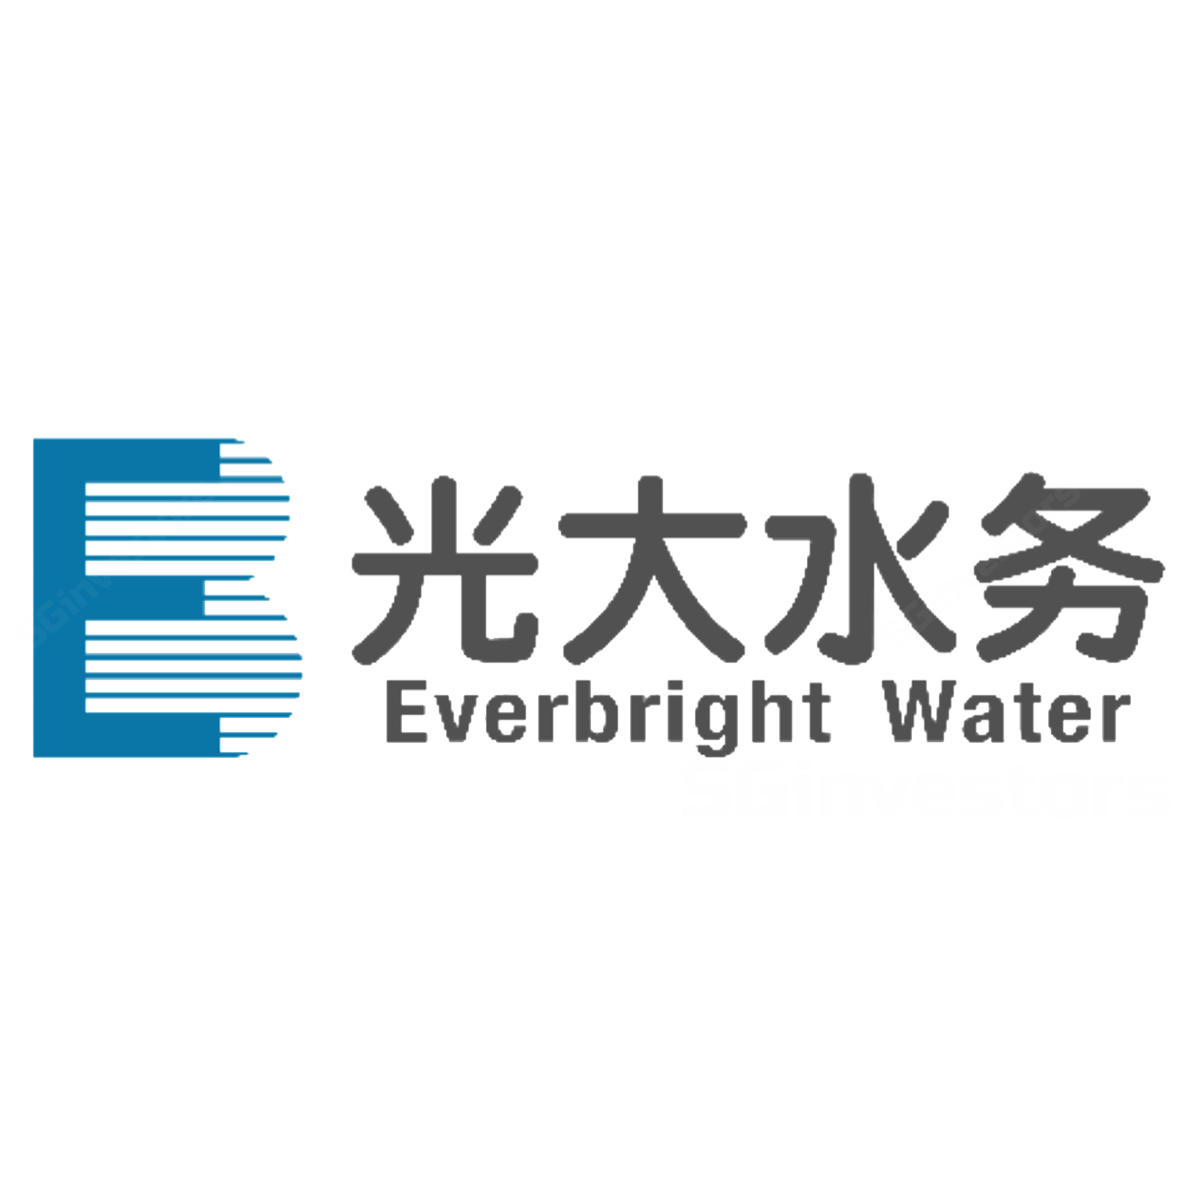 China Everbright Water (CEWL SP) - DBS Vickers 2018-03-01: Strong Balance Sheet To Support Growth